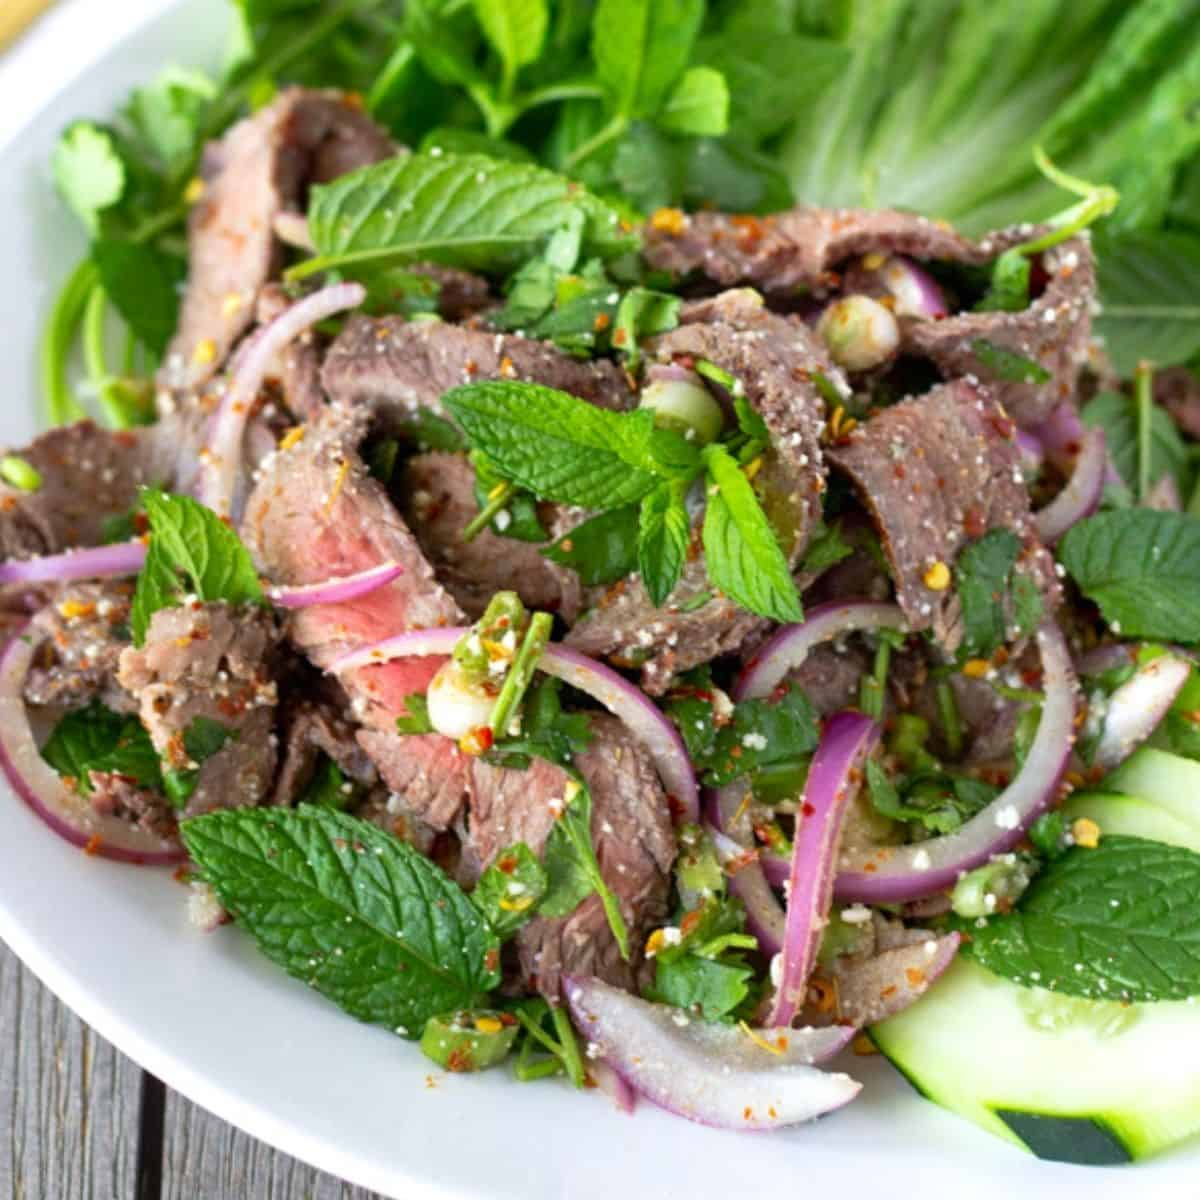 Up close view of sliced steak salad with mint, red onions, and a spicy Thai dressing.